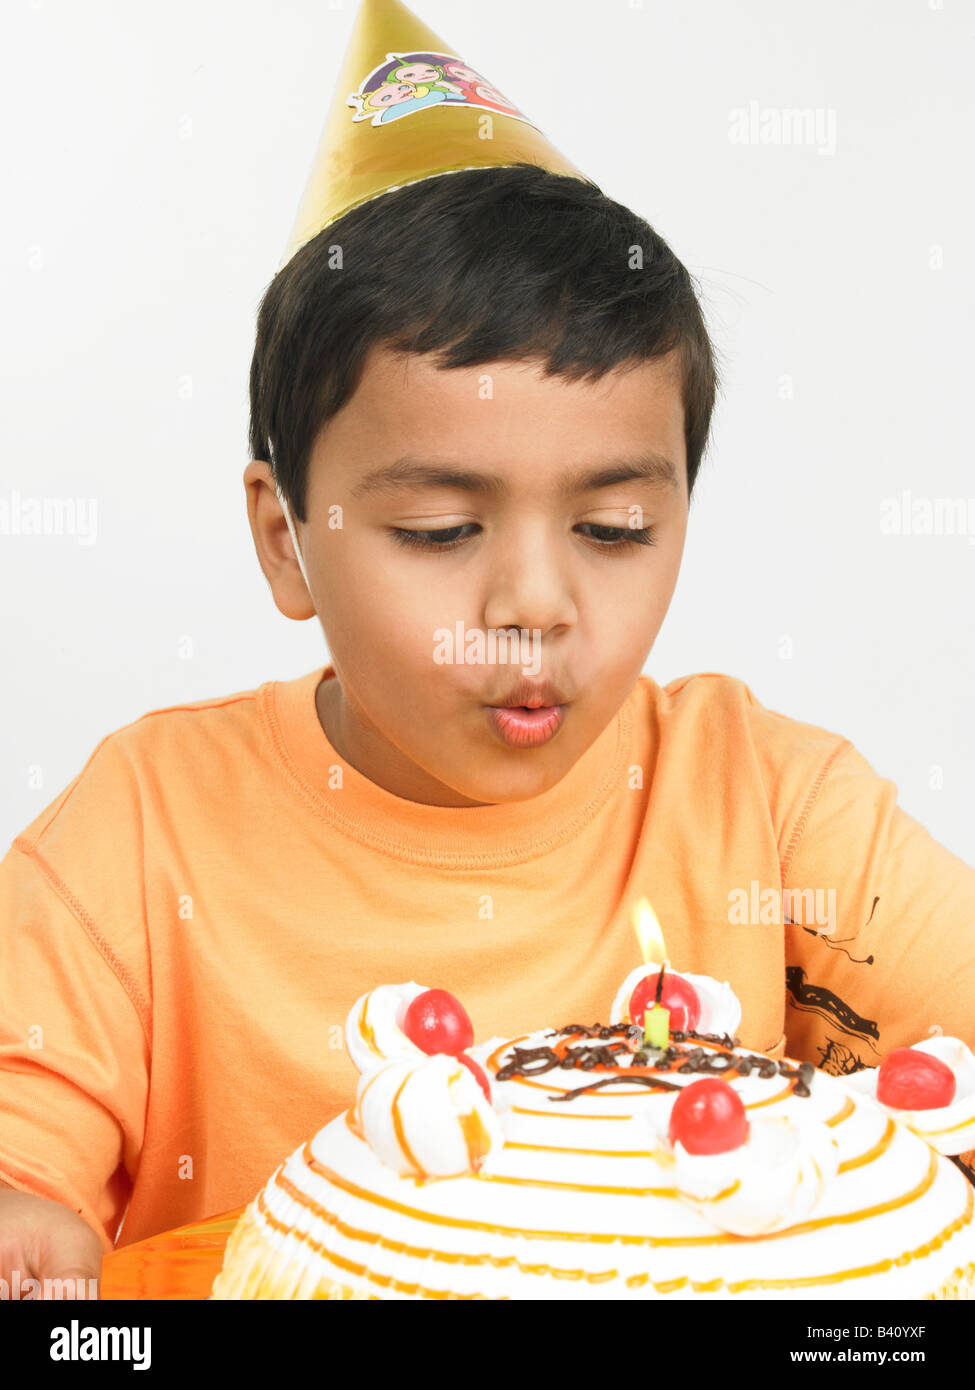 Asian Boy Of Indian Origin Blowing The Candle On His Birthday Cake